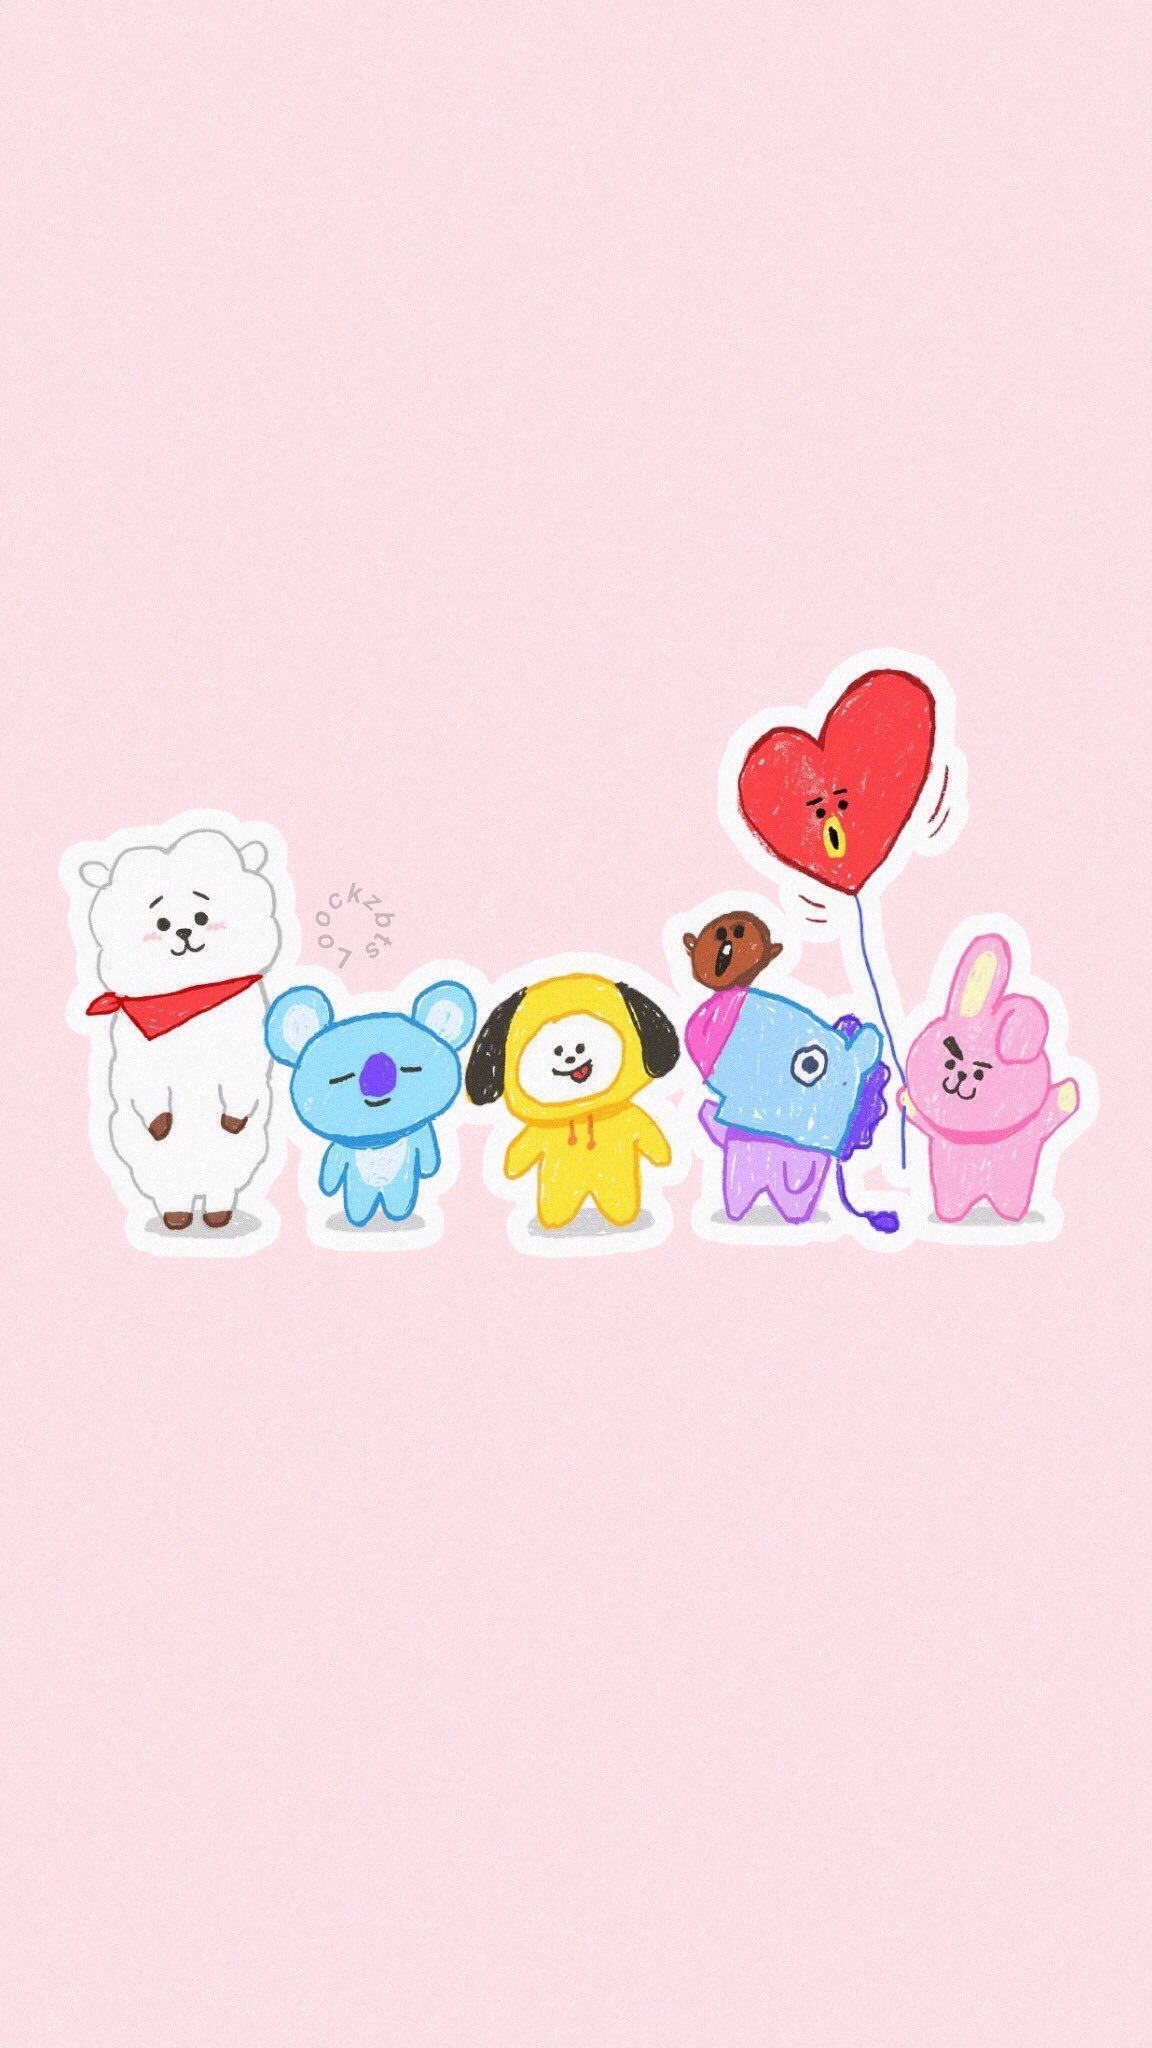 bts bt21 BTS love Pinterest BTS, Wallpaper